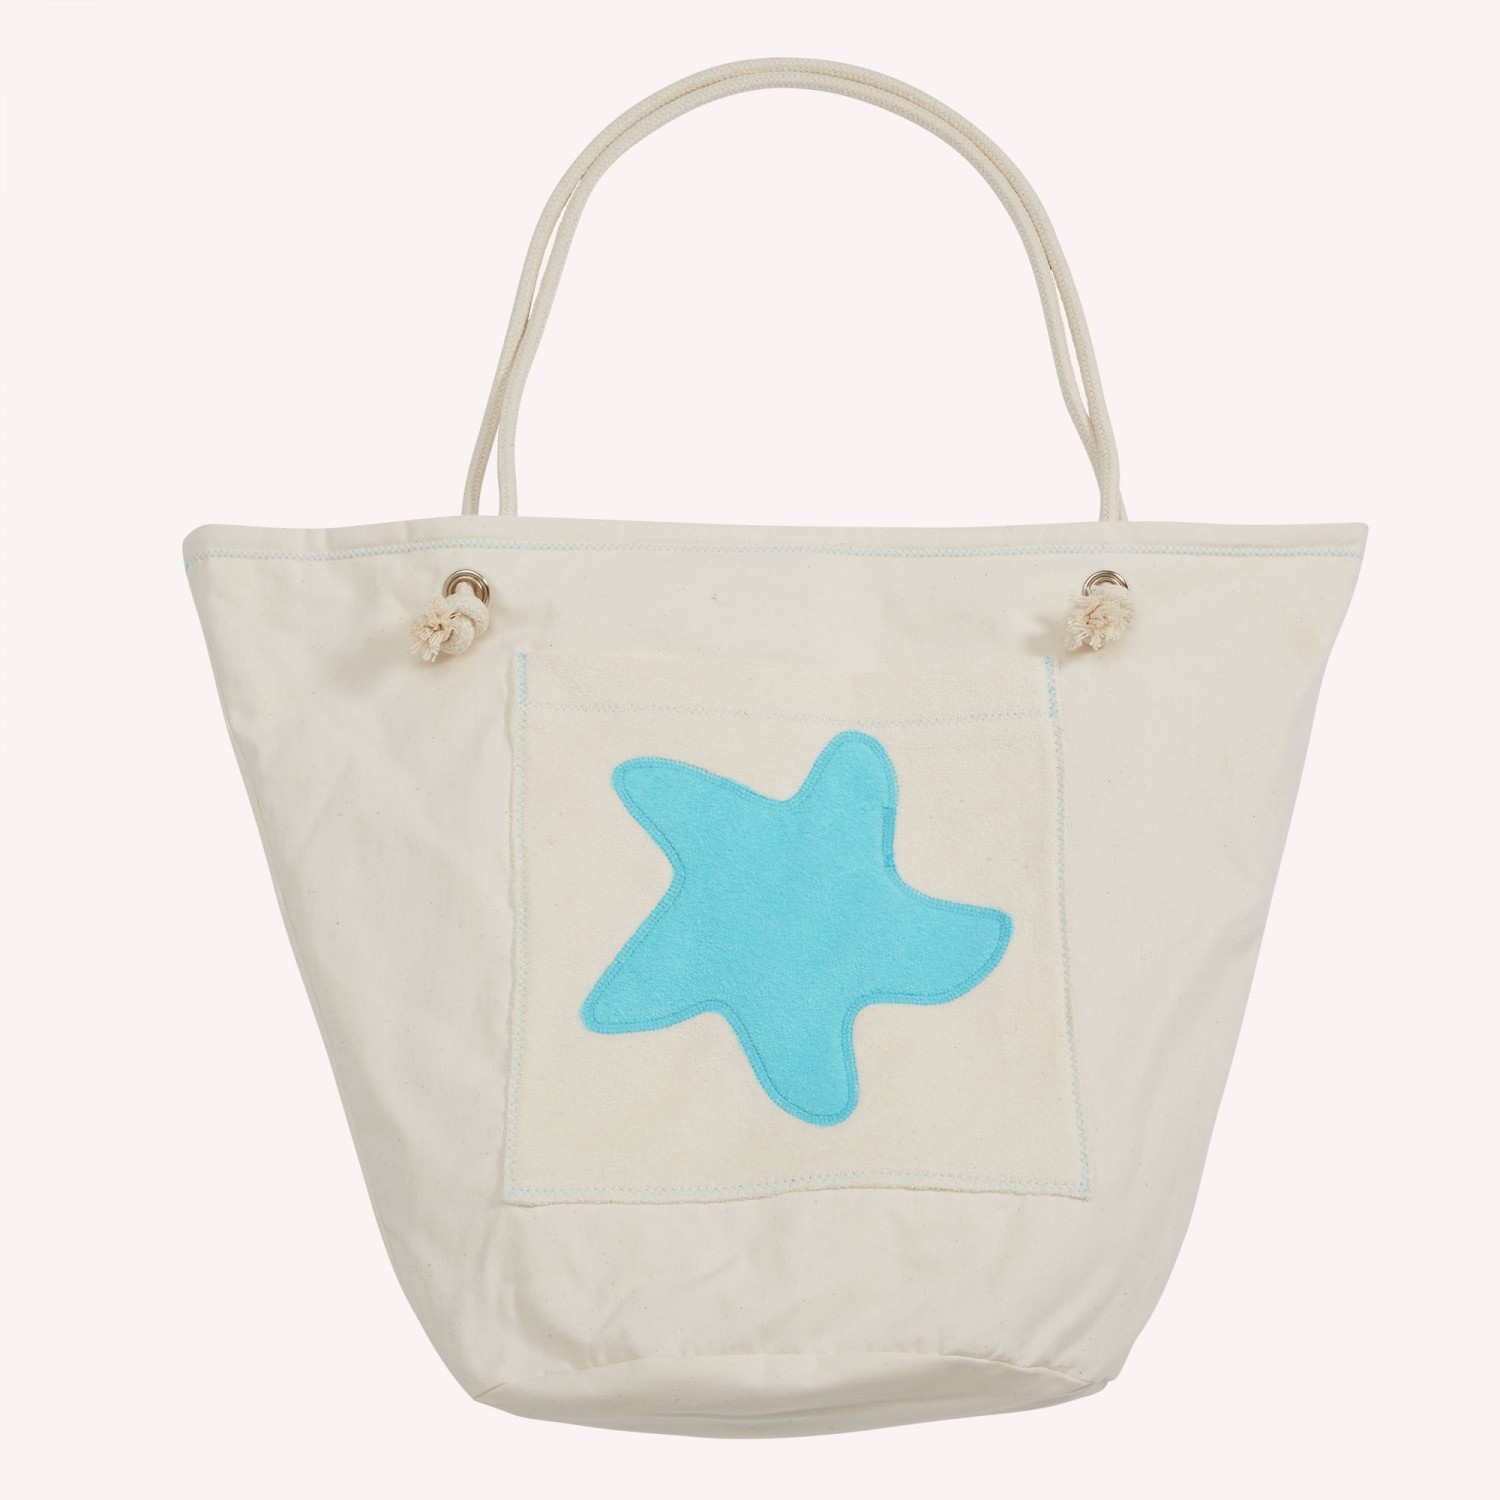 early fish Eco Beach Bag, Sea Blue, with Starfish, Organic Cotton